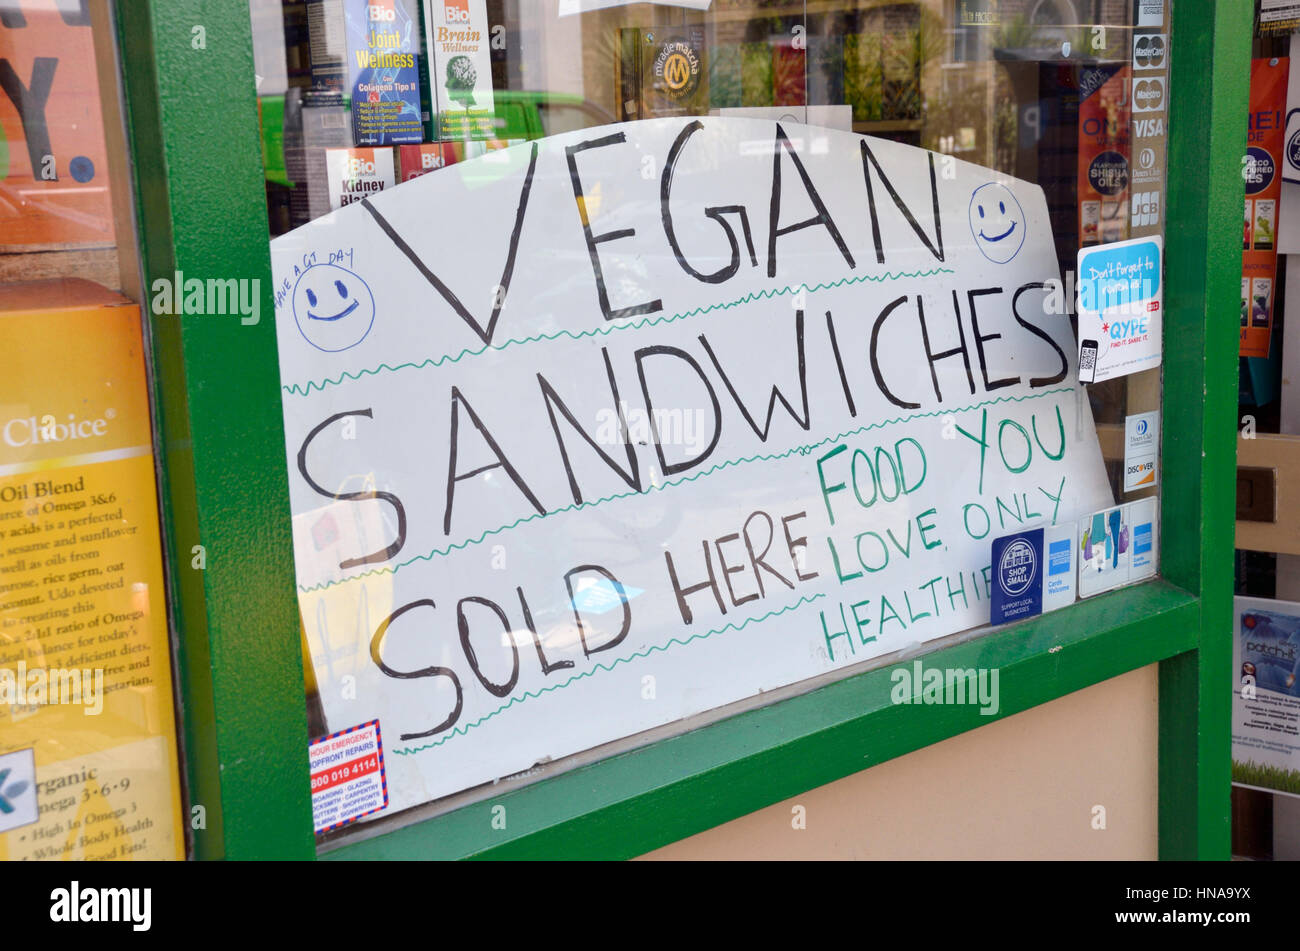 'Vegan Sandwiches Sold Here' sign in a shop window - Stock Image